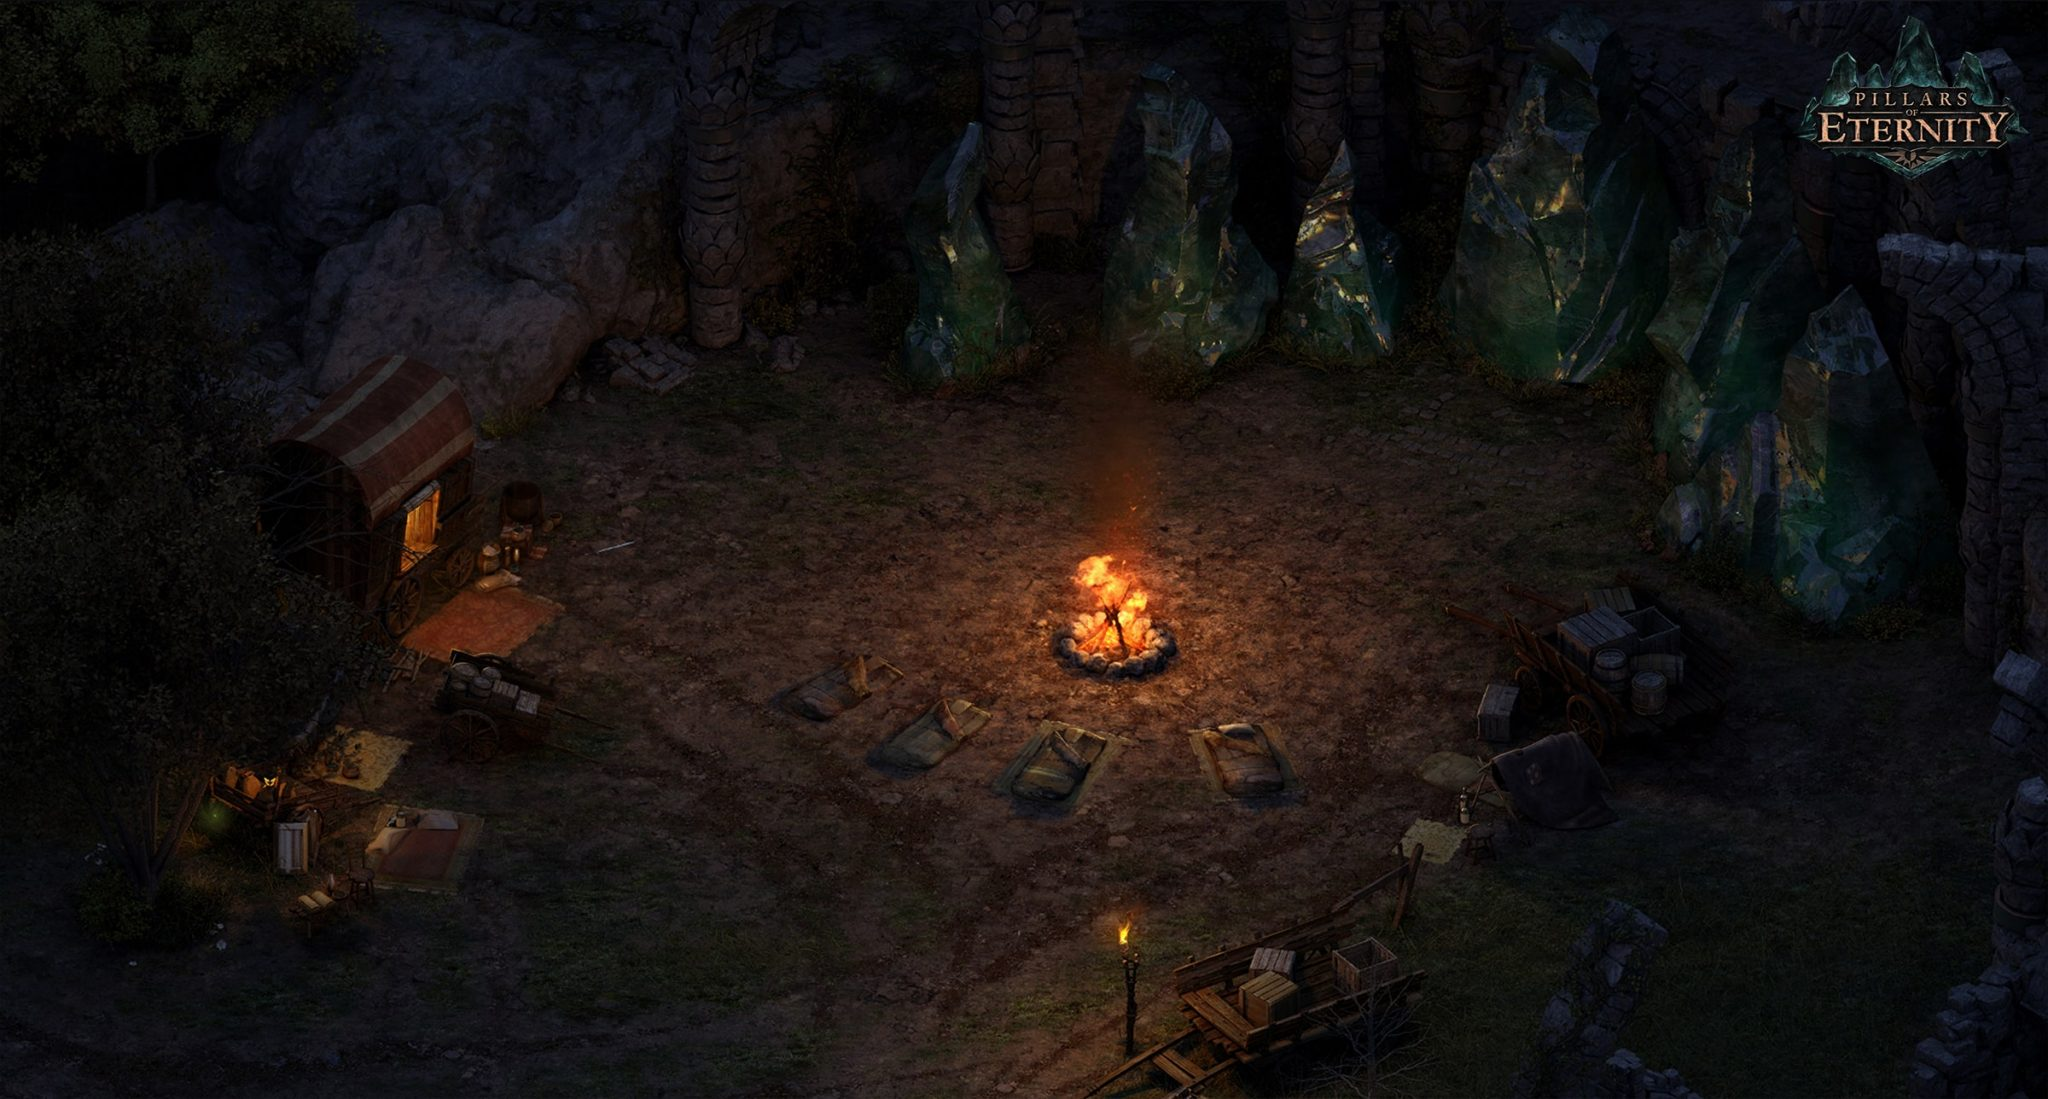 Pillars of Eternity (5)